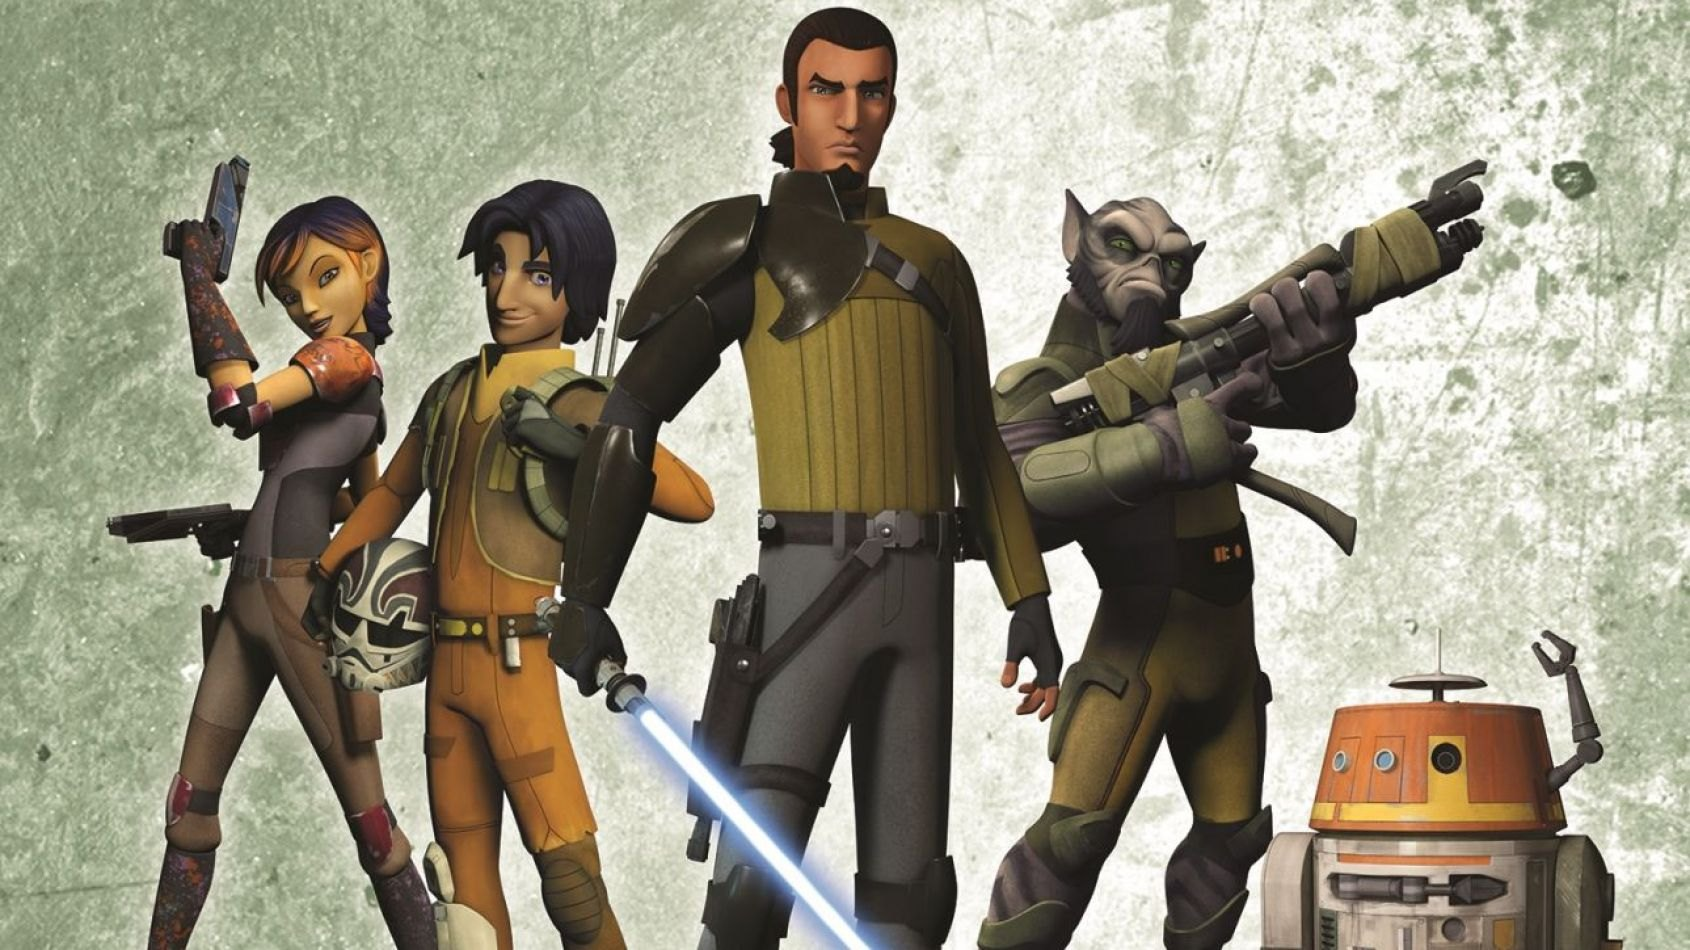 Delcourt : Sortie de l'album Star Wars Rebels 6